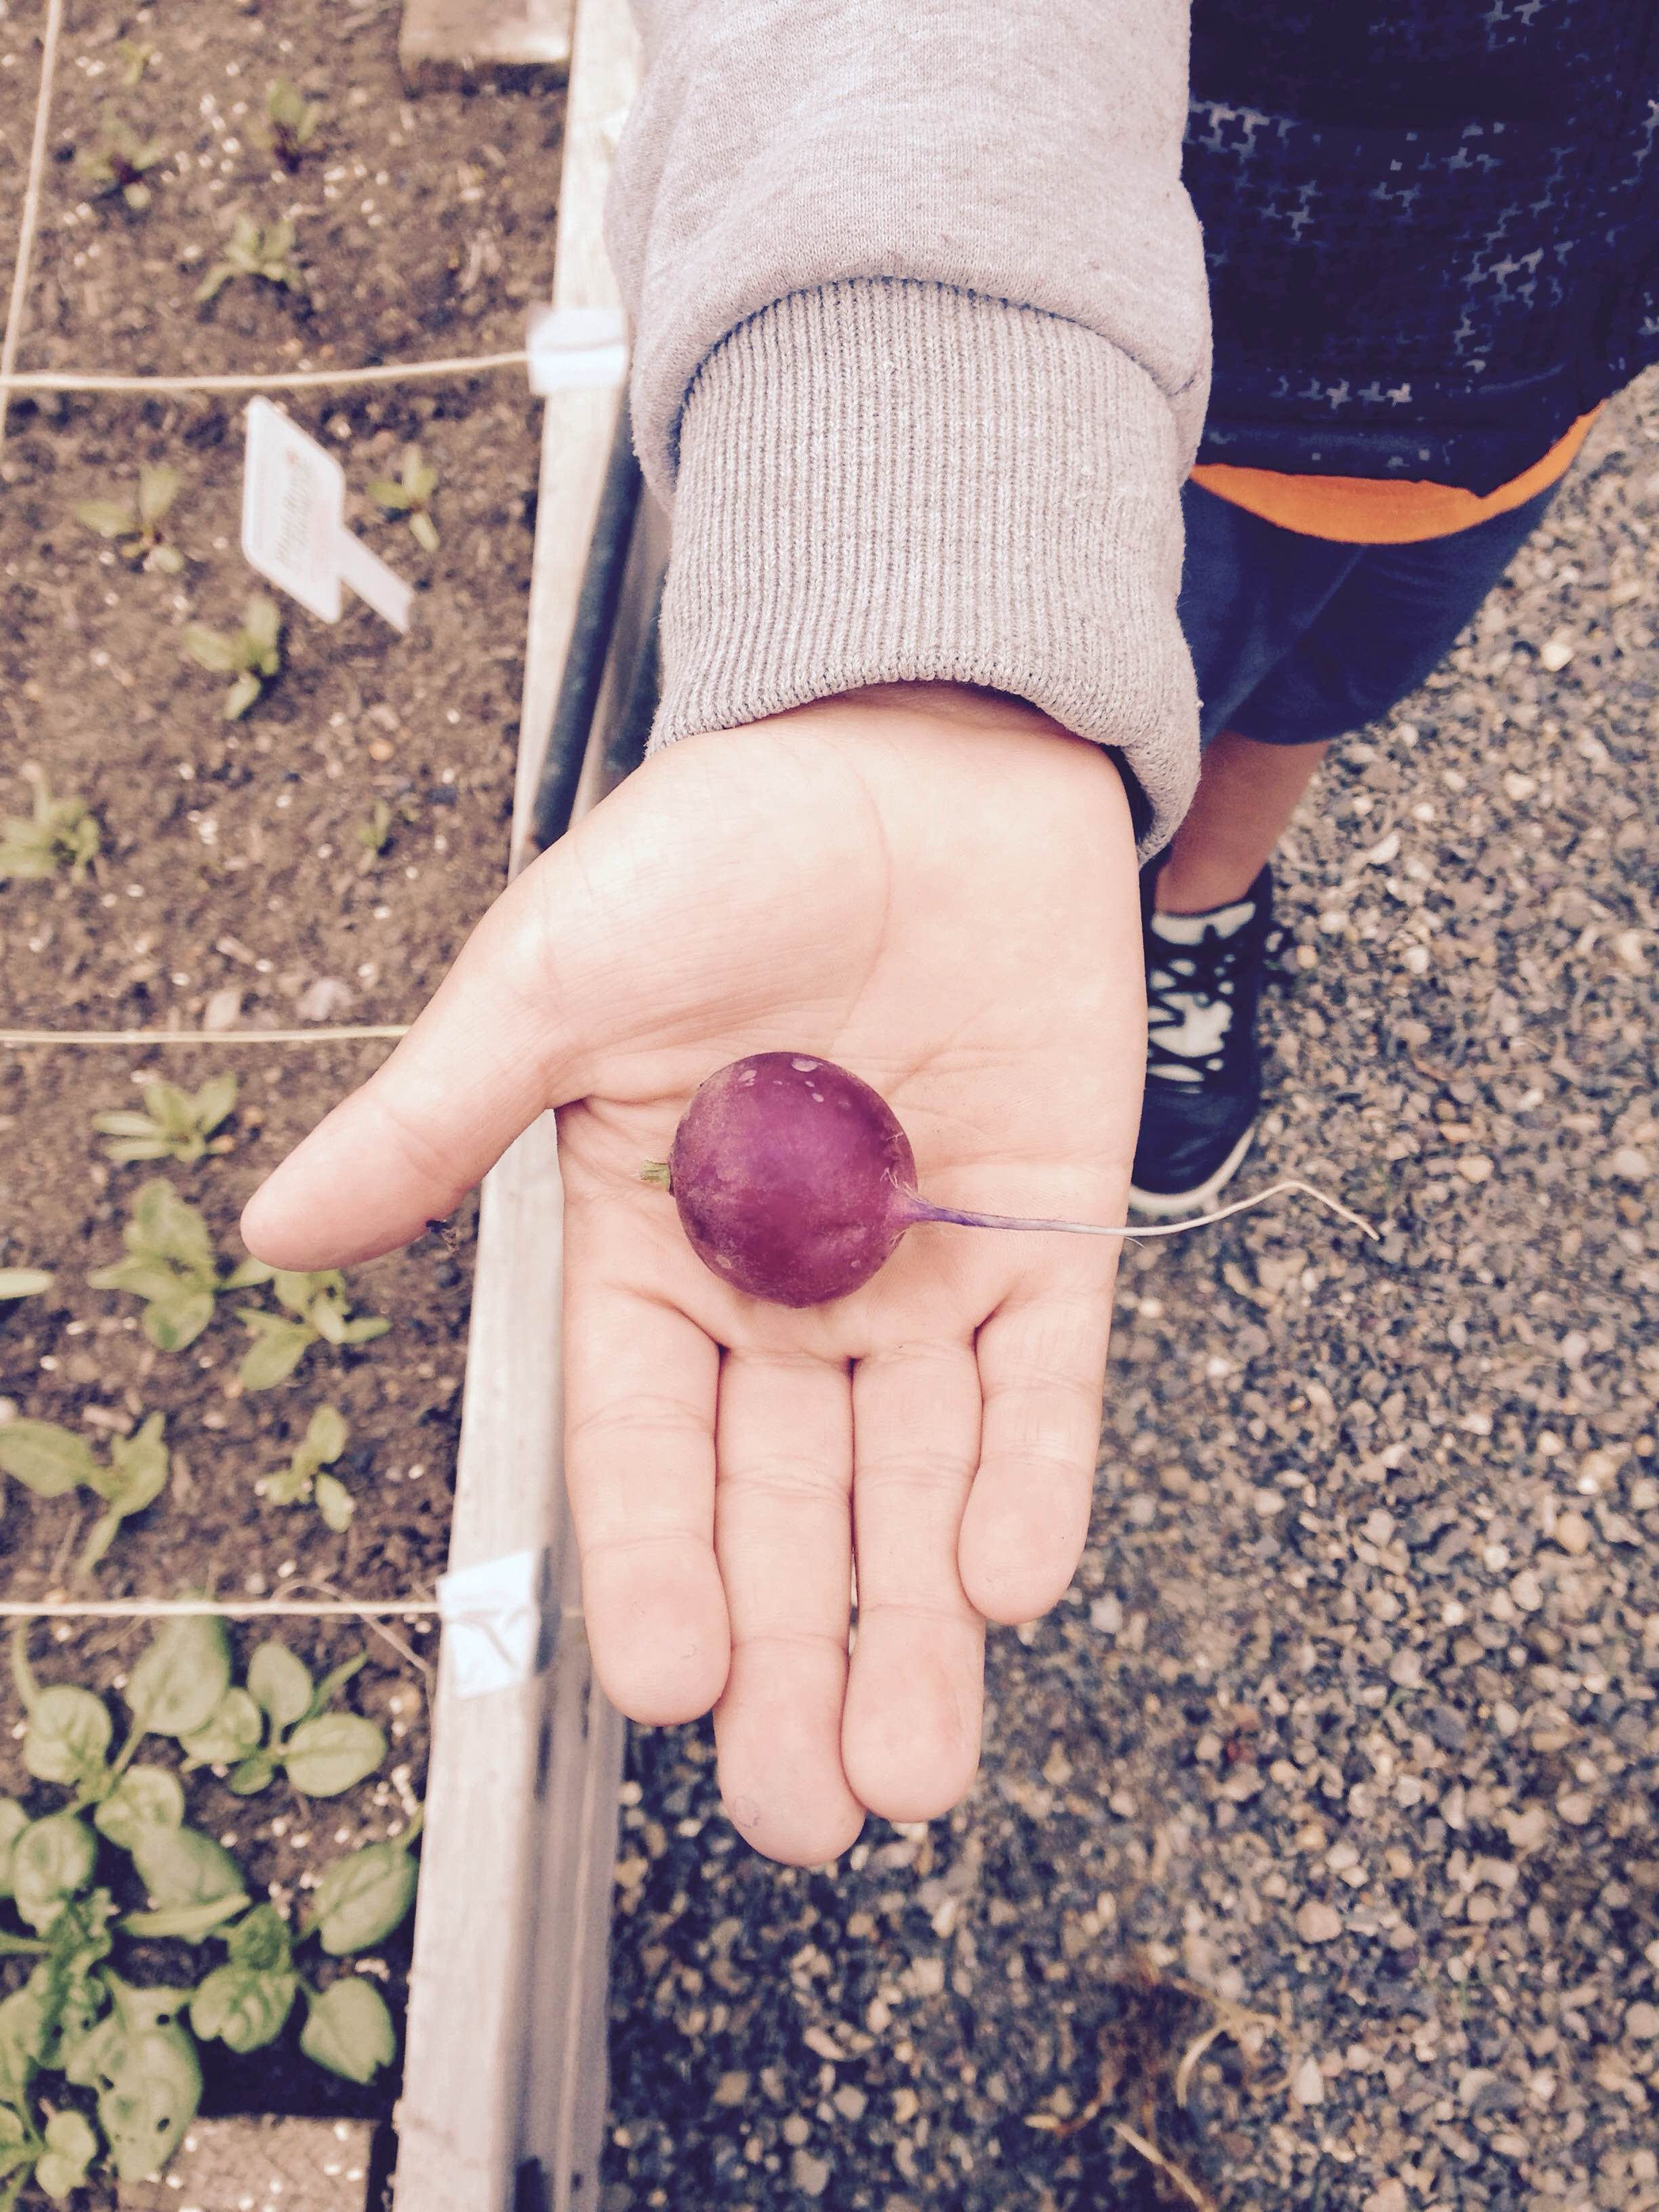 A volunteer holds the first radish harvested from the garden in 2015.